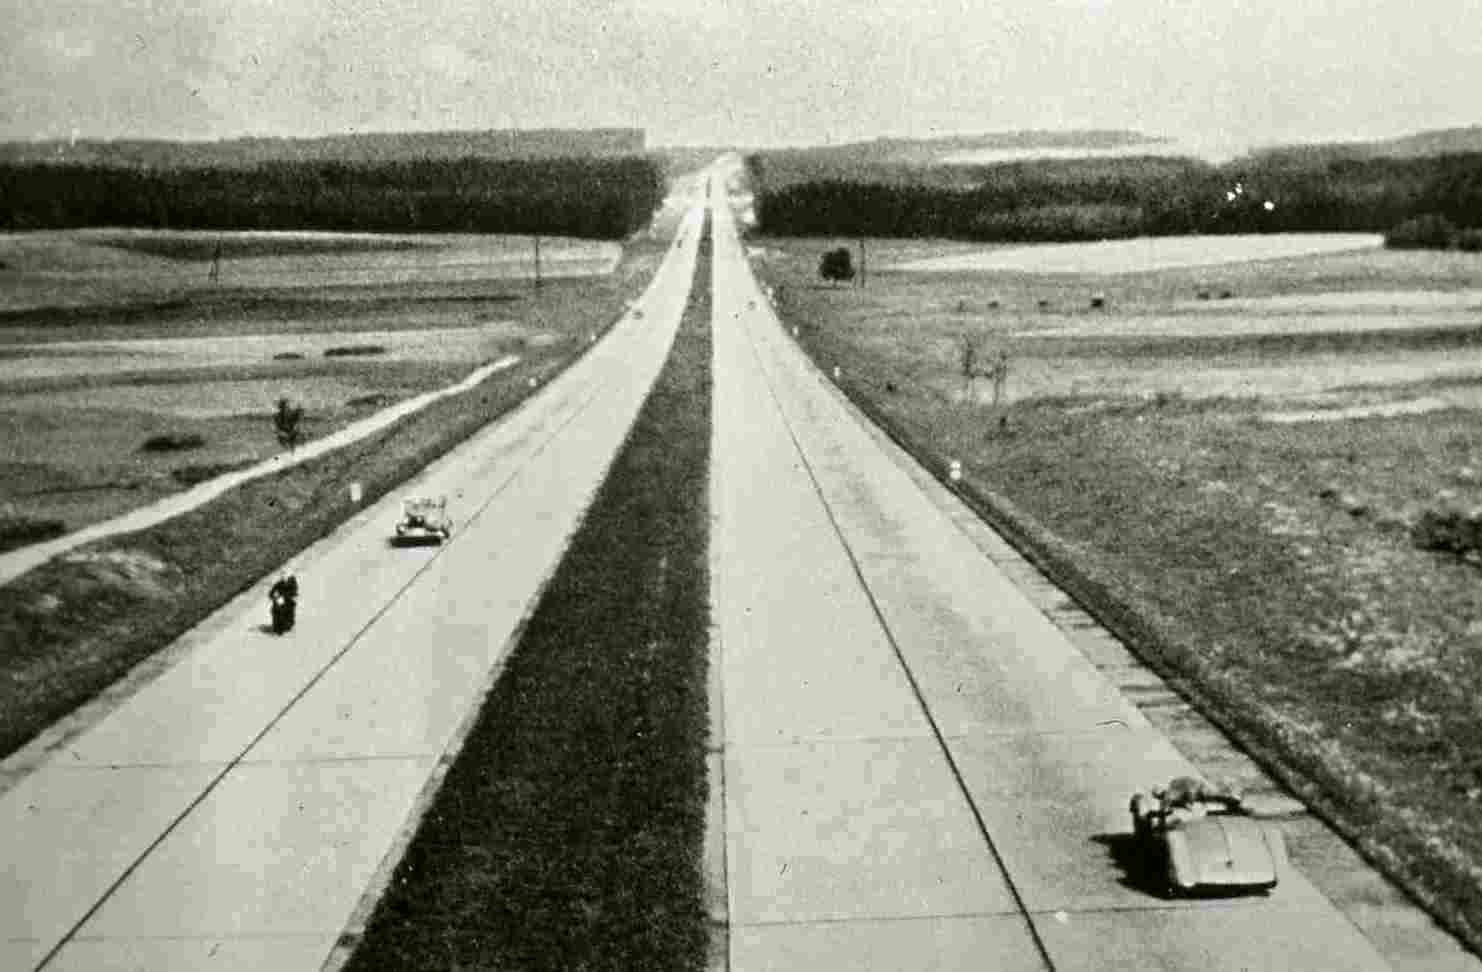 In the post Depression era Germany was building a national network of high speed roads called Autobahns. Like the Roman Roads of ancient times these Autobahns were strategic as well as being useful to the public. These were the roads for the Volkswagens.